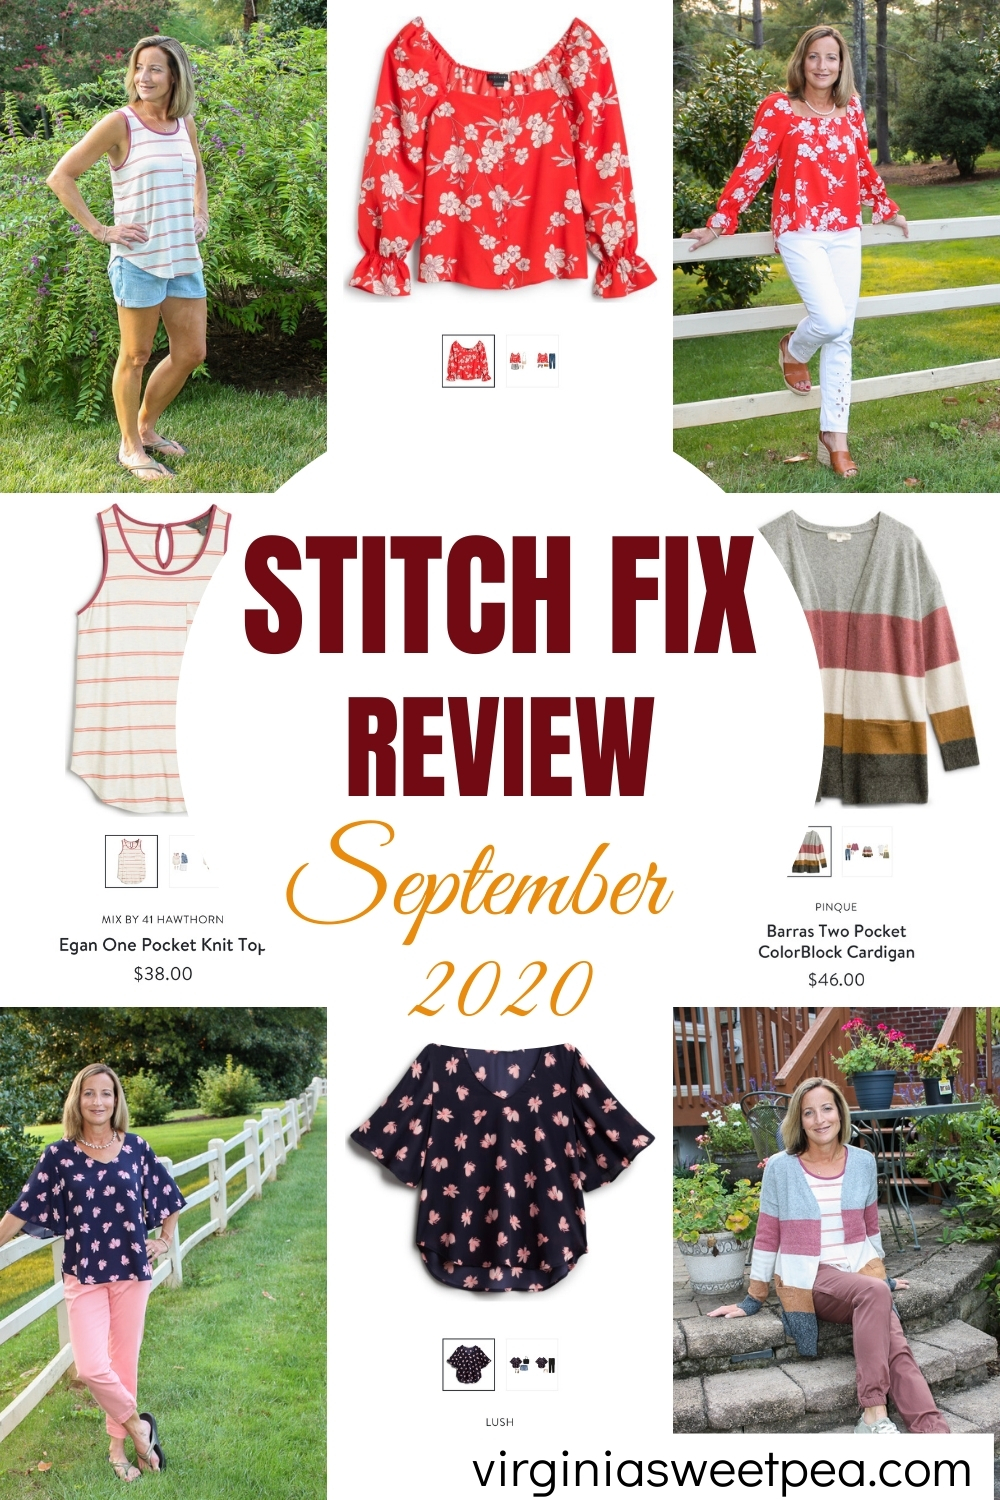 Stitch Fix Review for September 2020